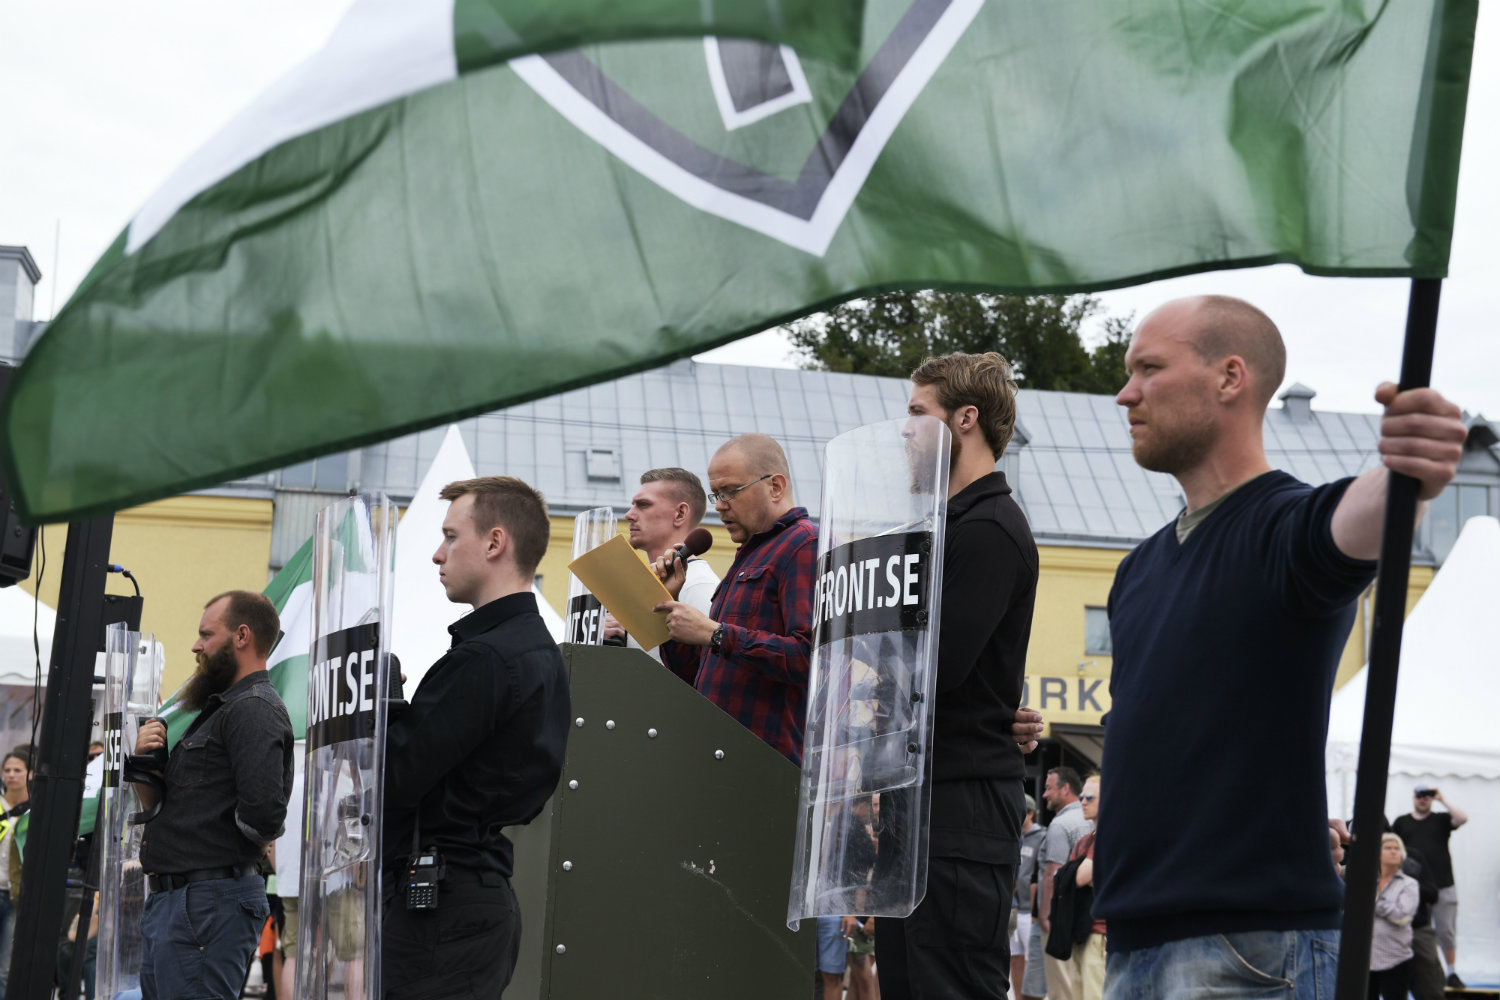 Sweden's Nordic Resistance Movement demonstrates